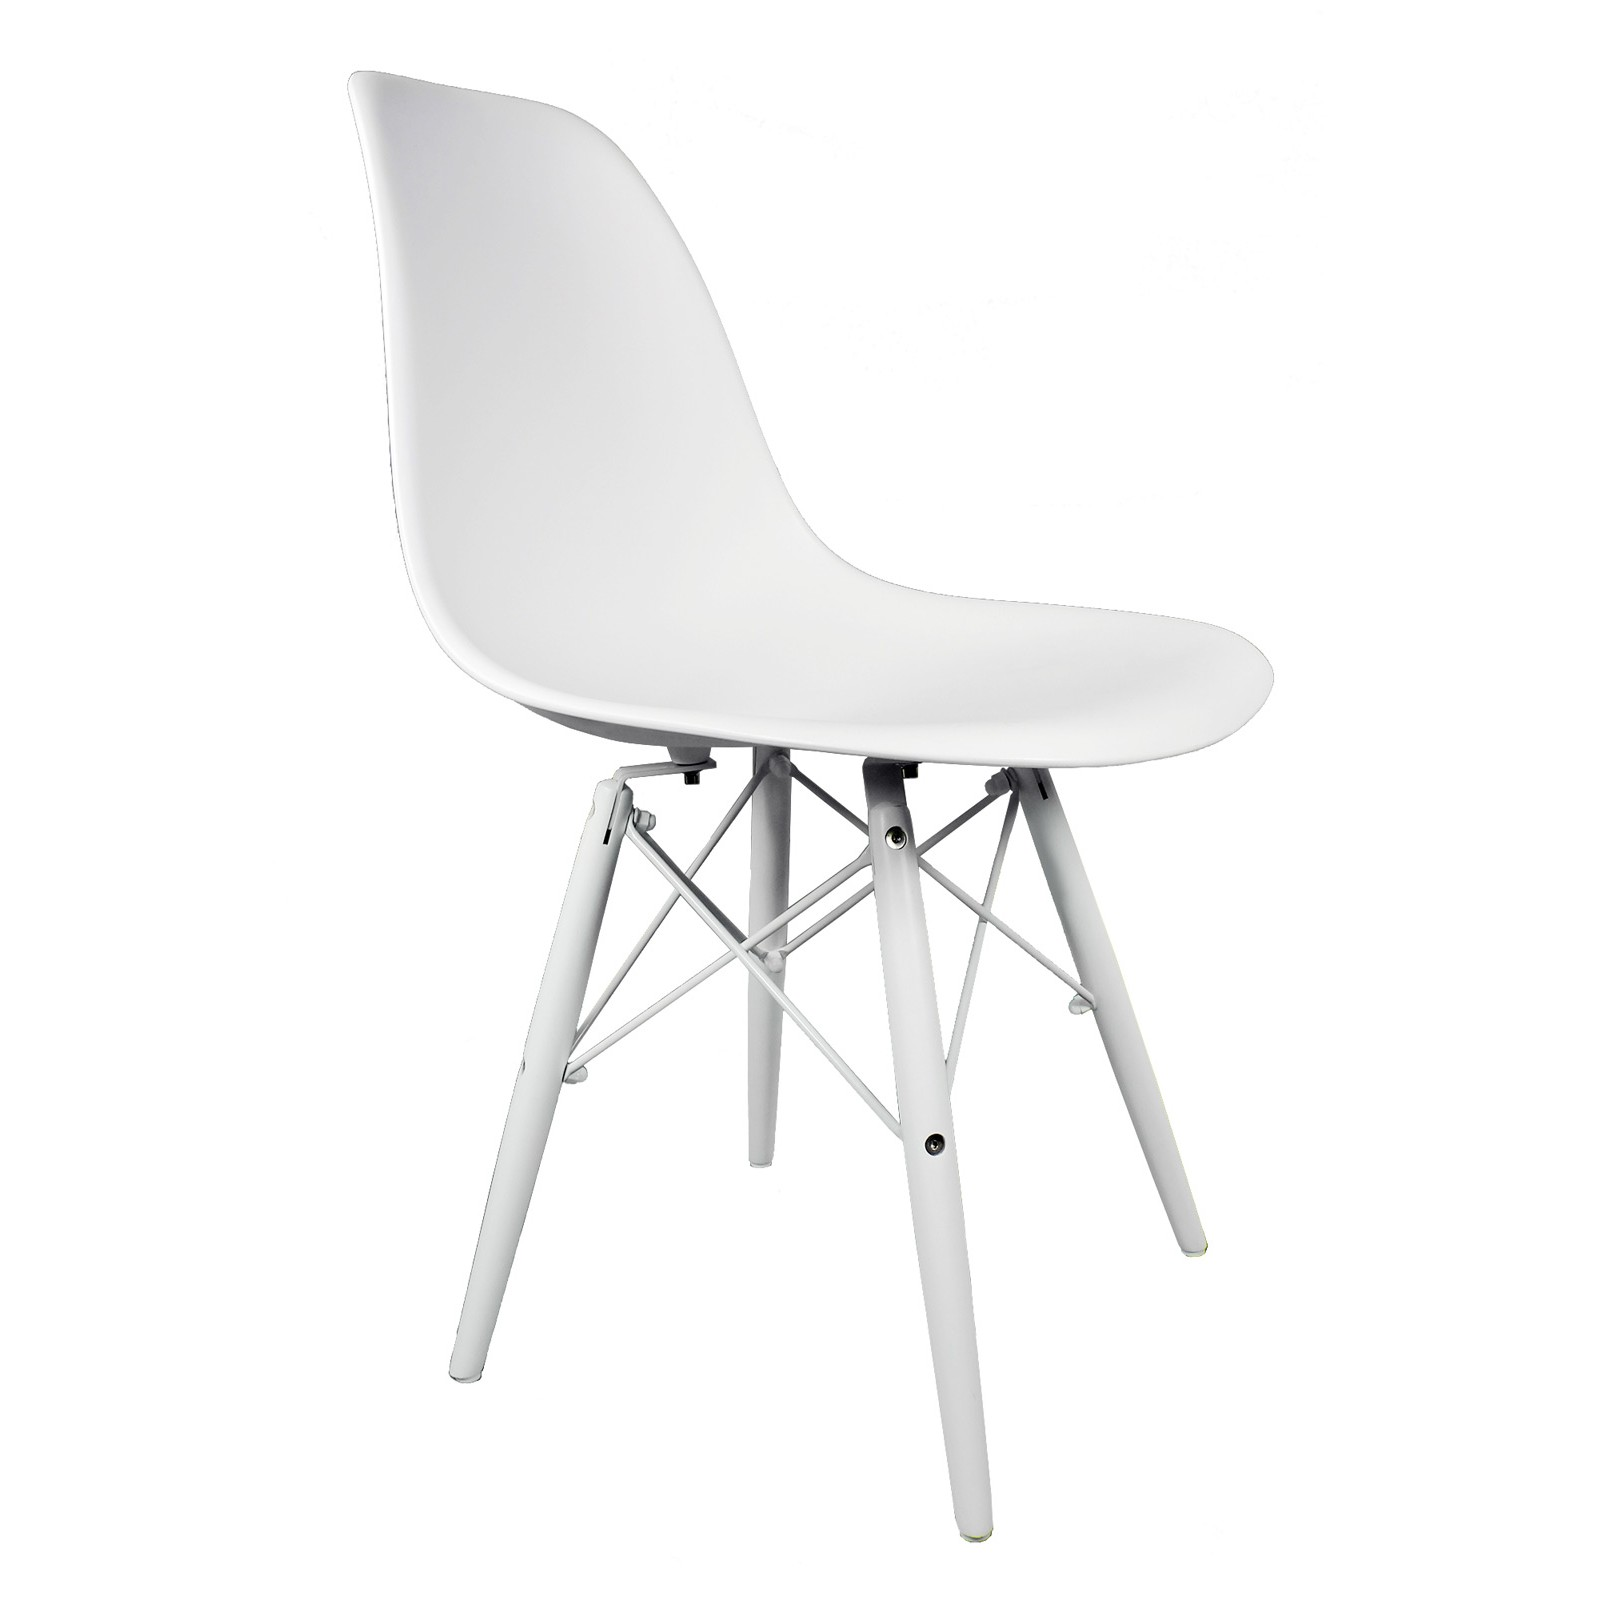 Dsw Chair Eames Style Dsw Molded White Plastic Dining Shell Chair